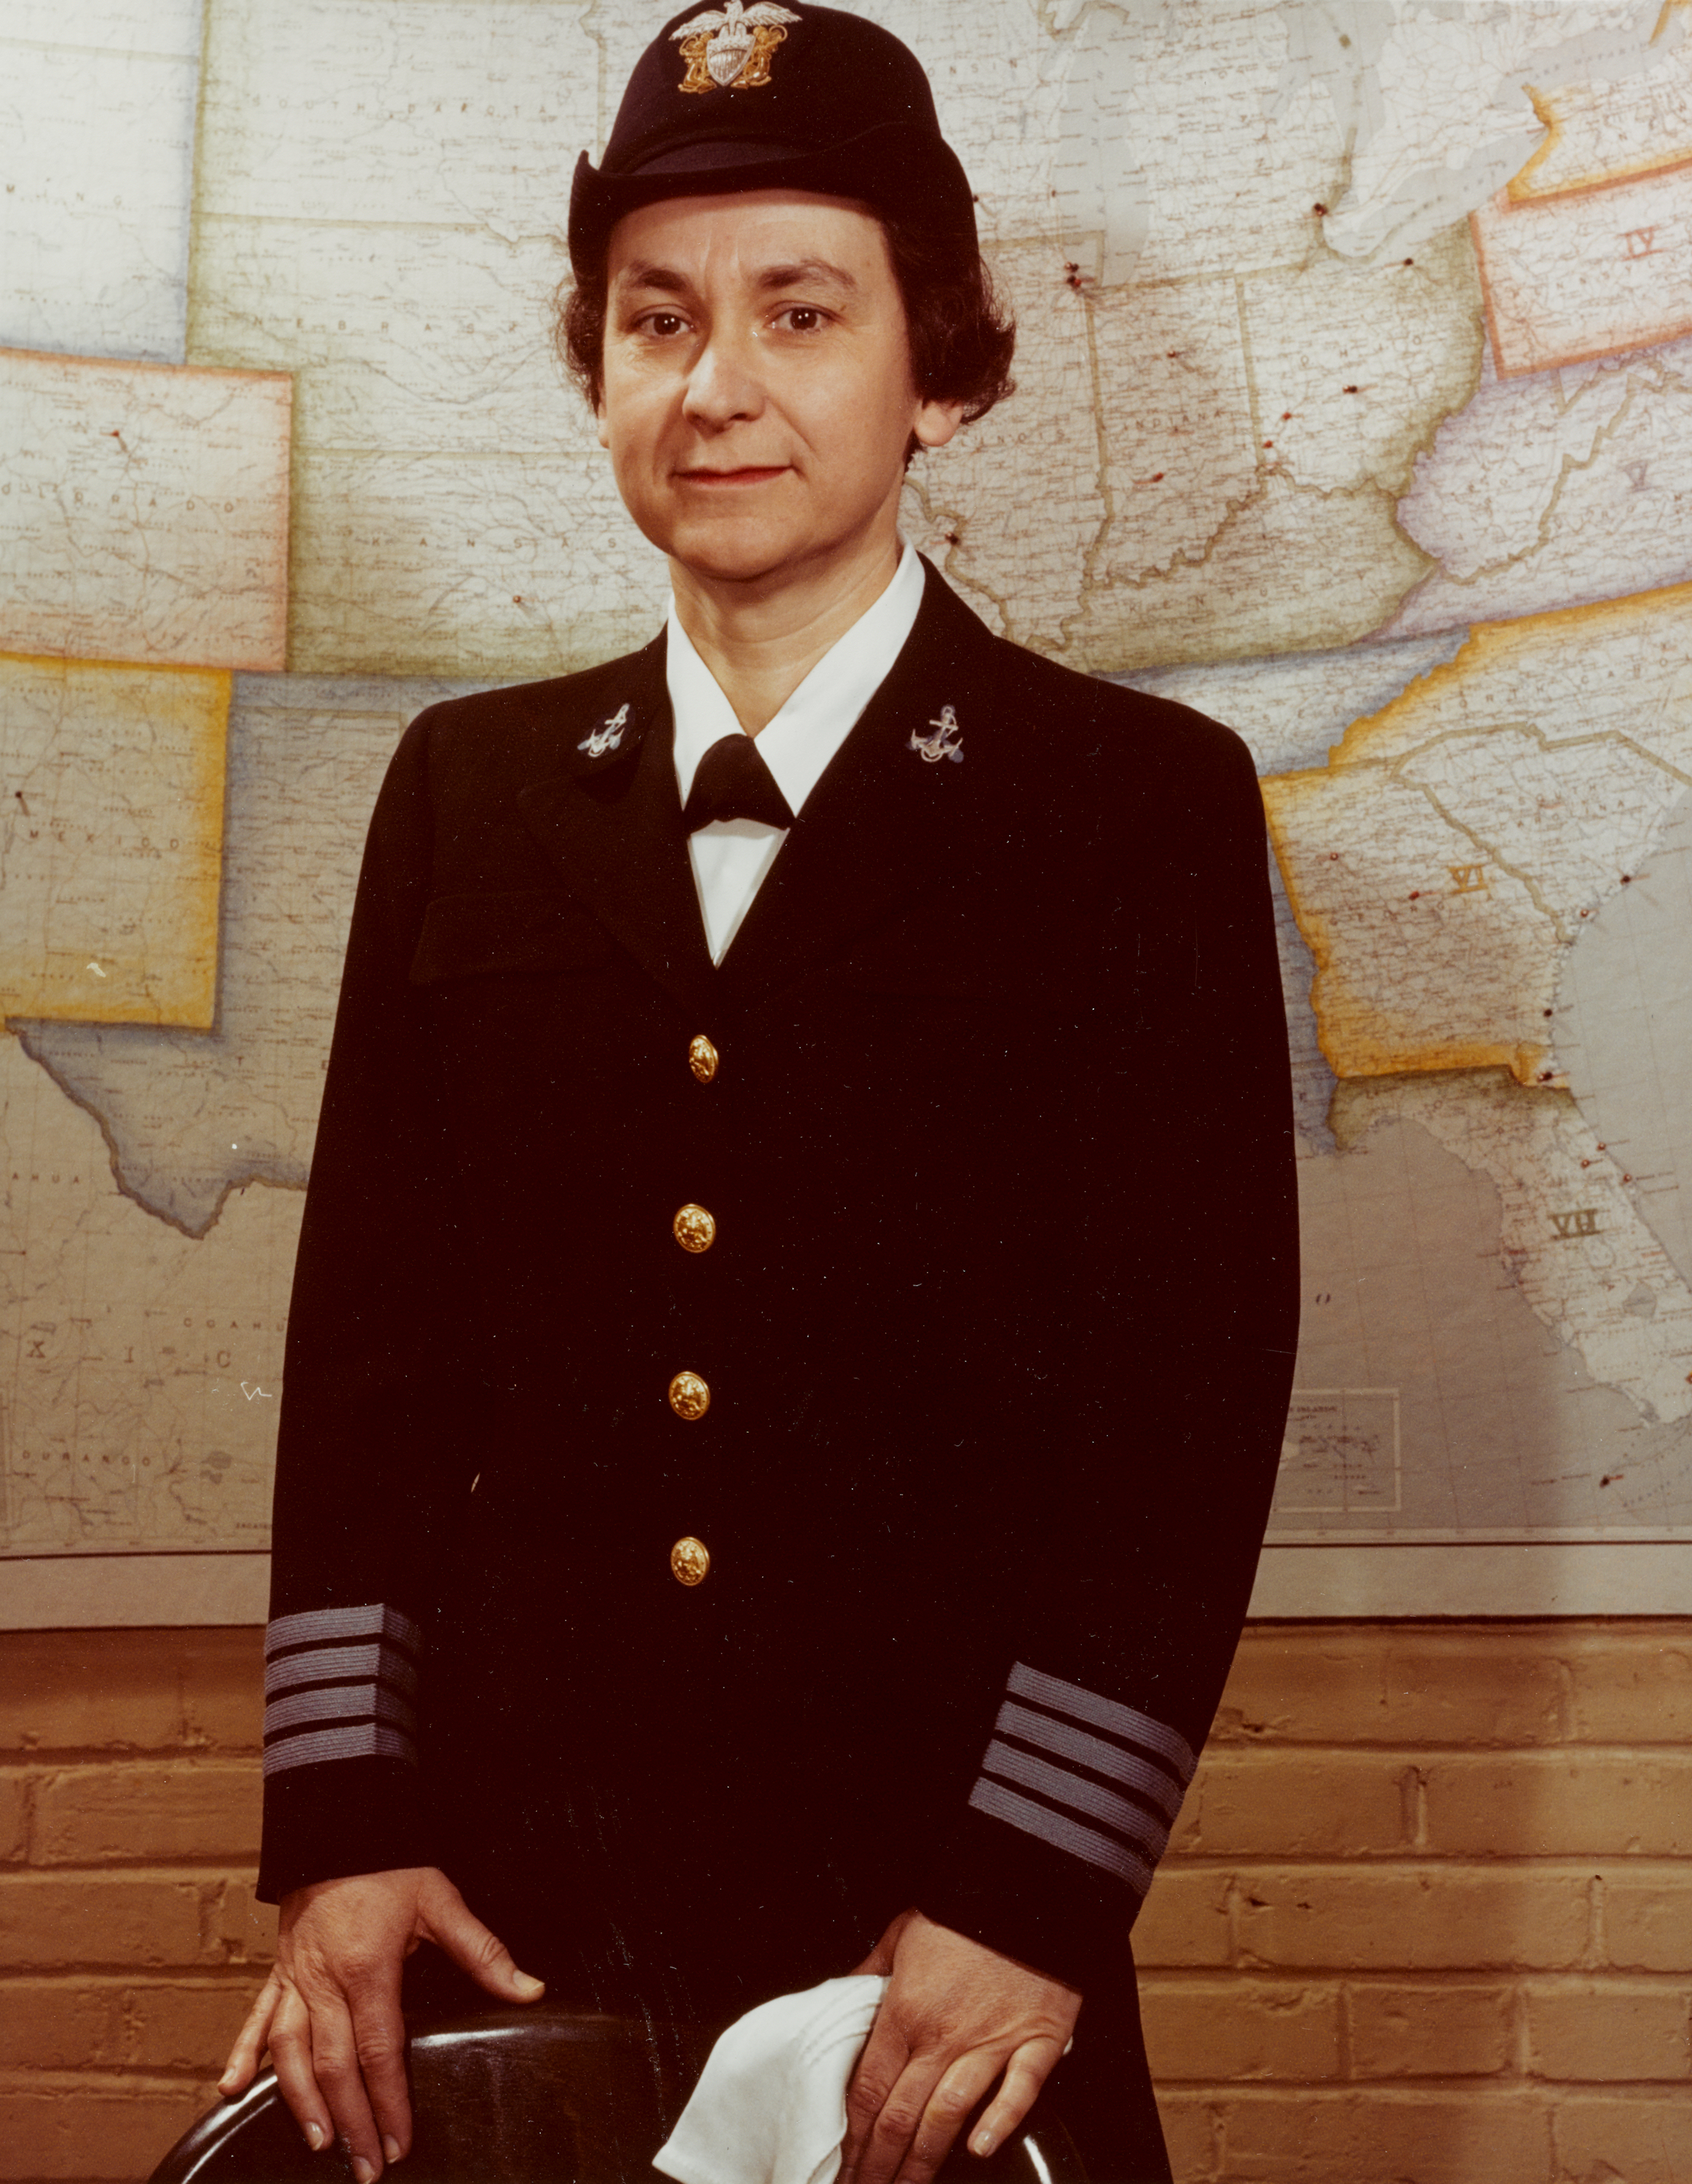 Captain Mildred H. McAfee, USNR